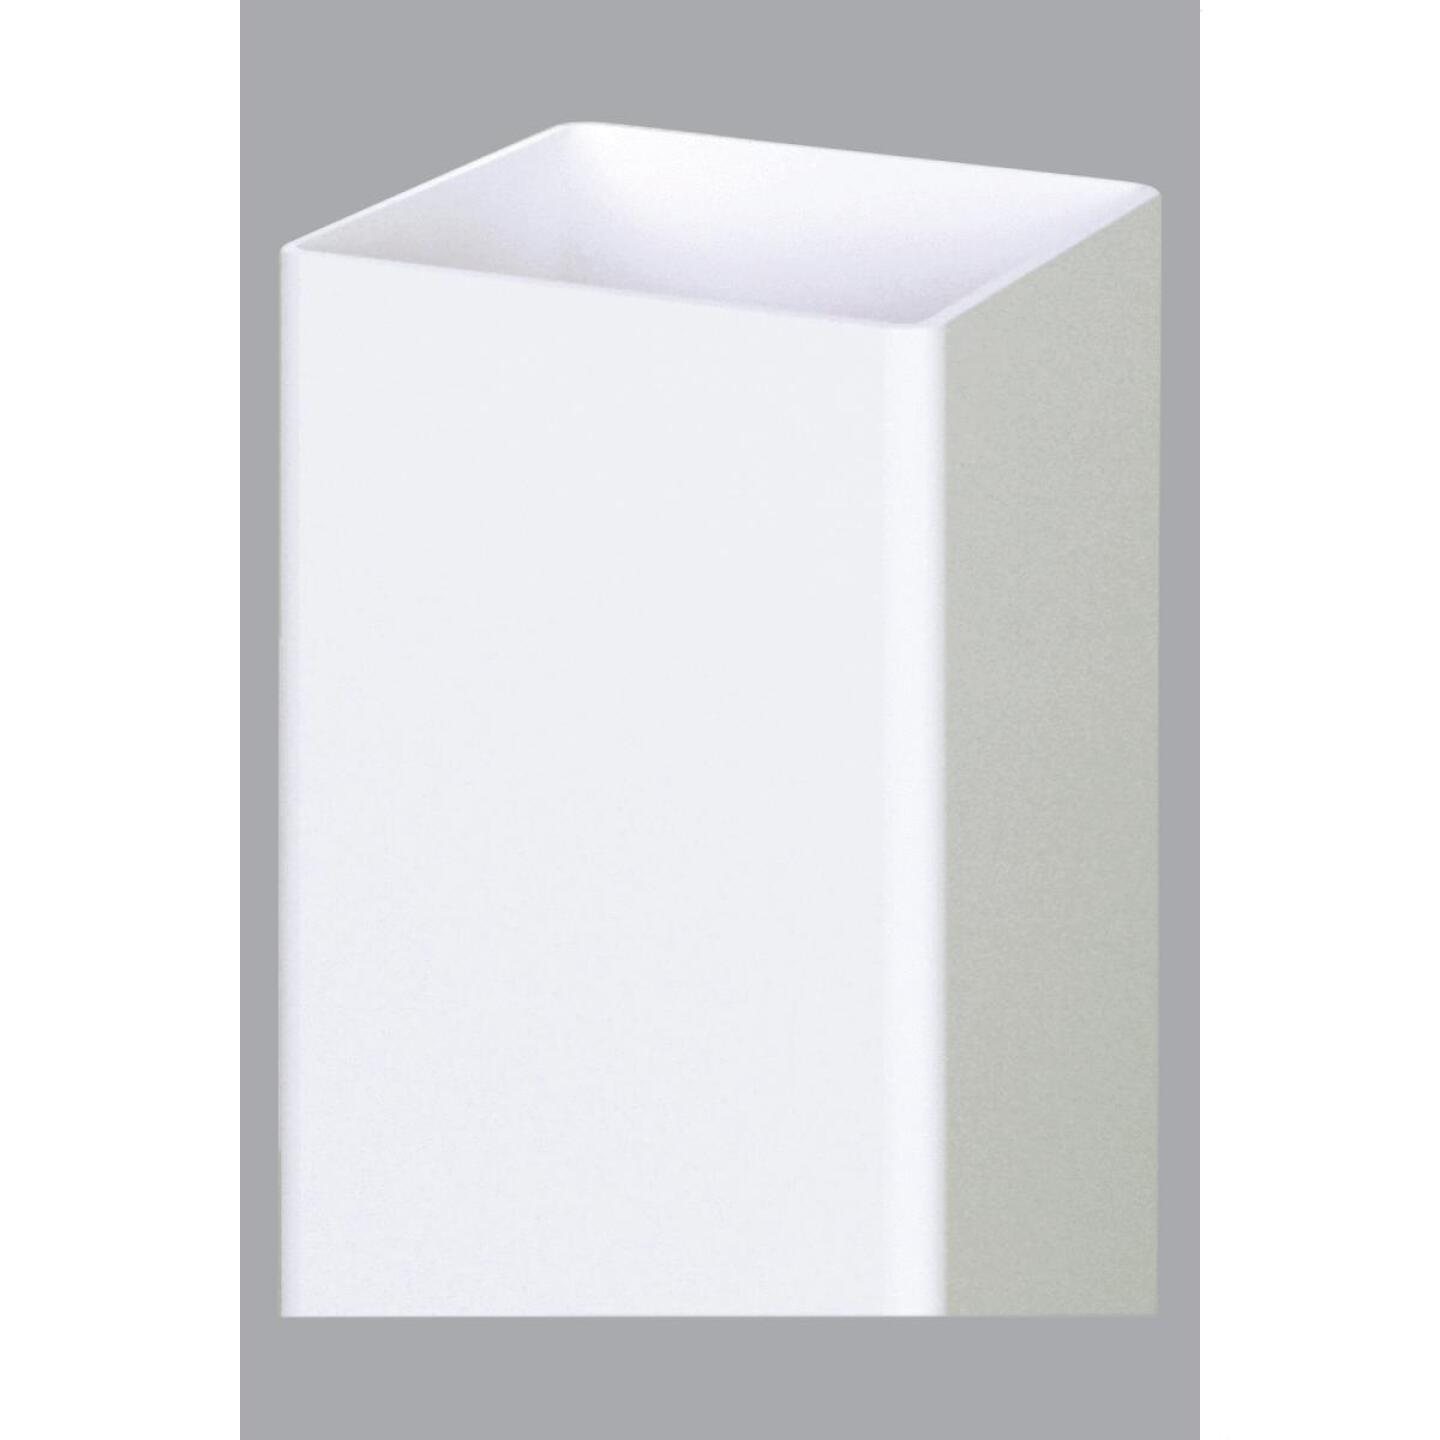 Outdoor Essentials 5 In. x 5 In. x 96 In. White Blank Vinyl Post Image 1